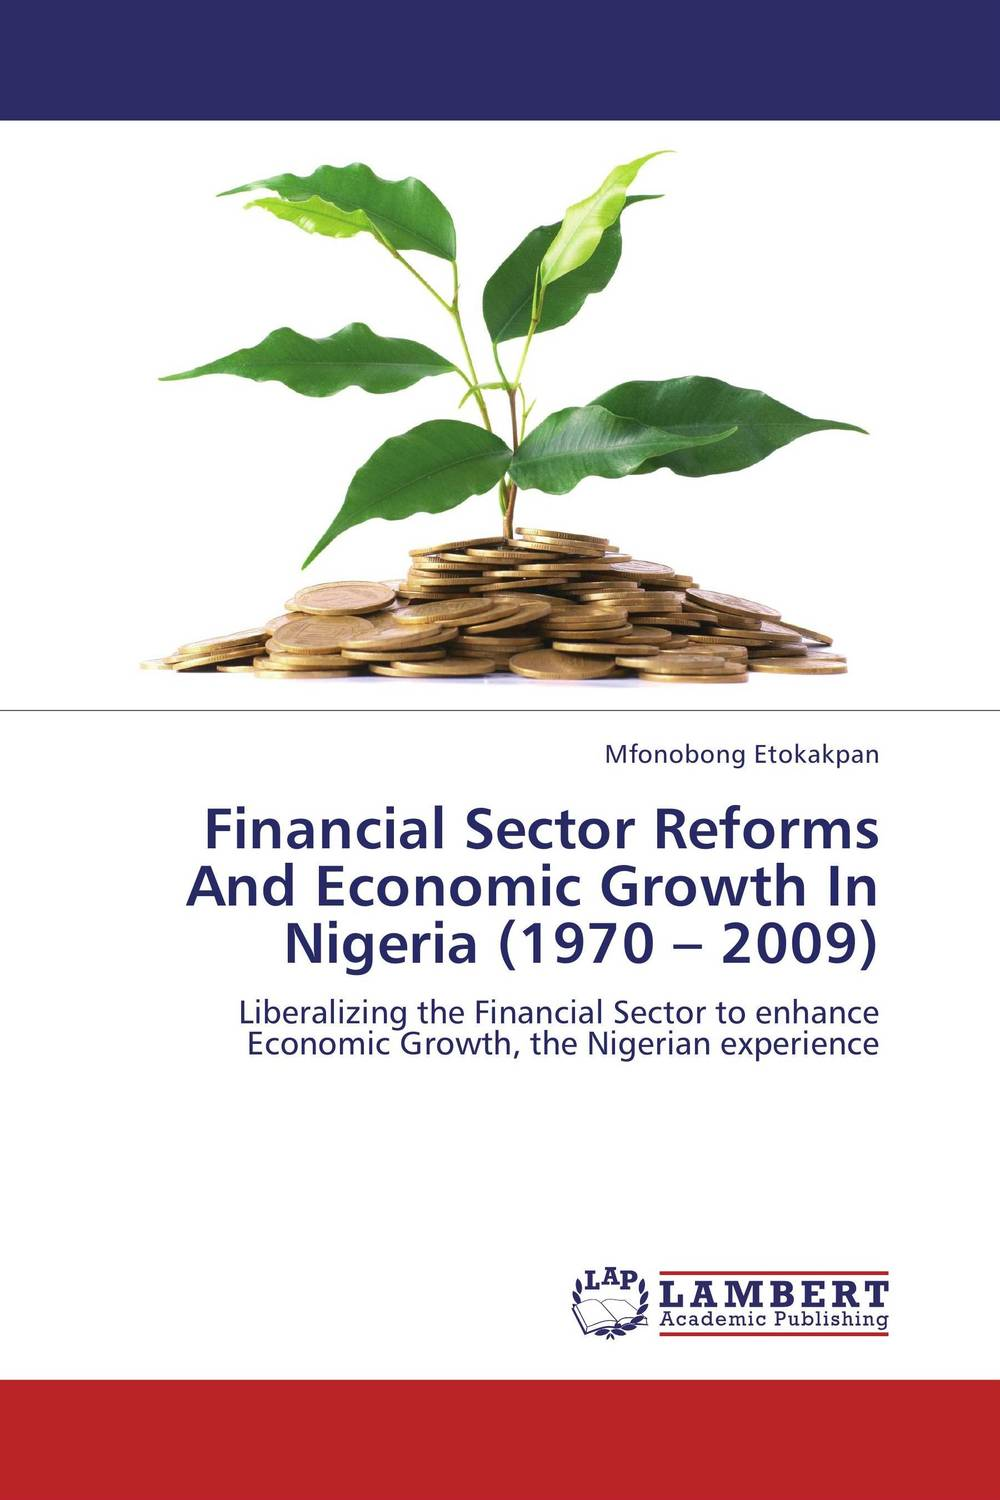 цена на Financial Sector Reforms And Economic Growth In Nigeria (1970 – 2009)